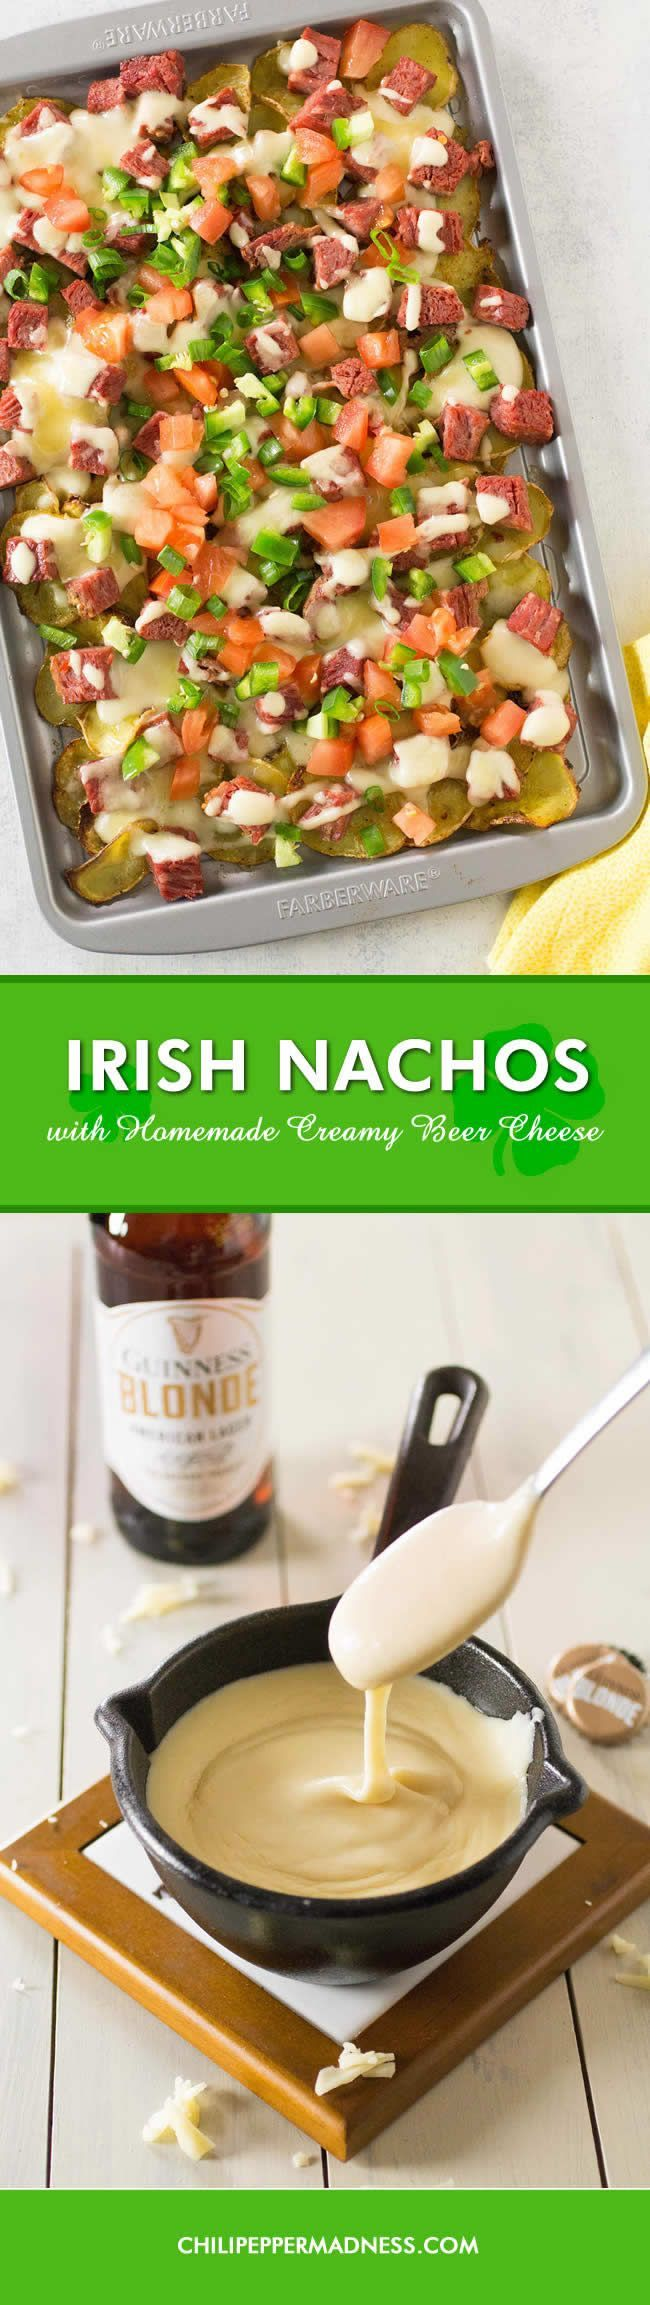 "Irish Nachos with Homemade Beer Cheese - The ultimate recipe for ""Irish Nachos"" made with baked potato slices, corned beef and a creamy homemade beer cheese, topped with jalapenos, tomatoes, and thousand island dressing. You will crave this dish all year long."